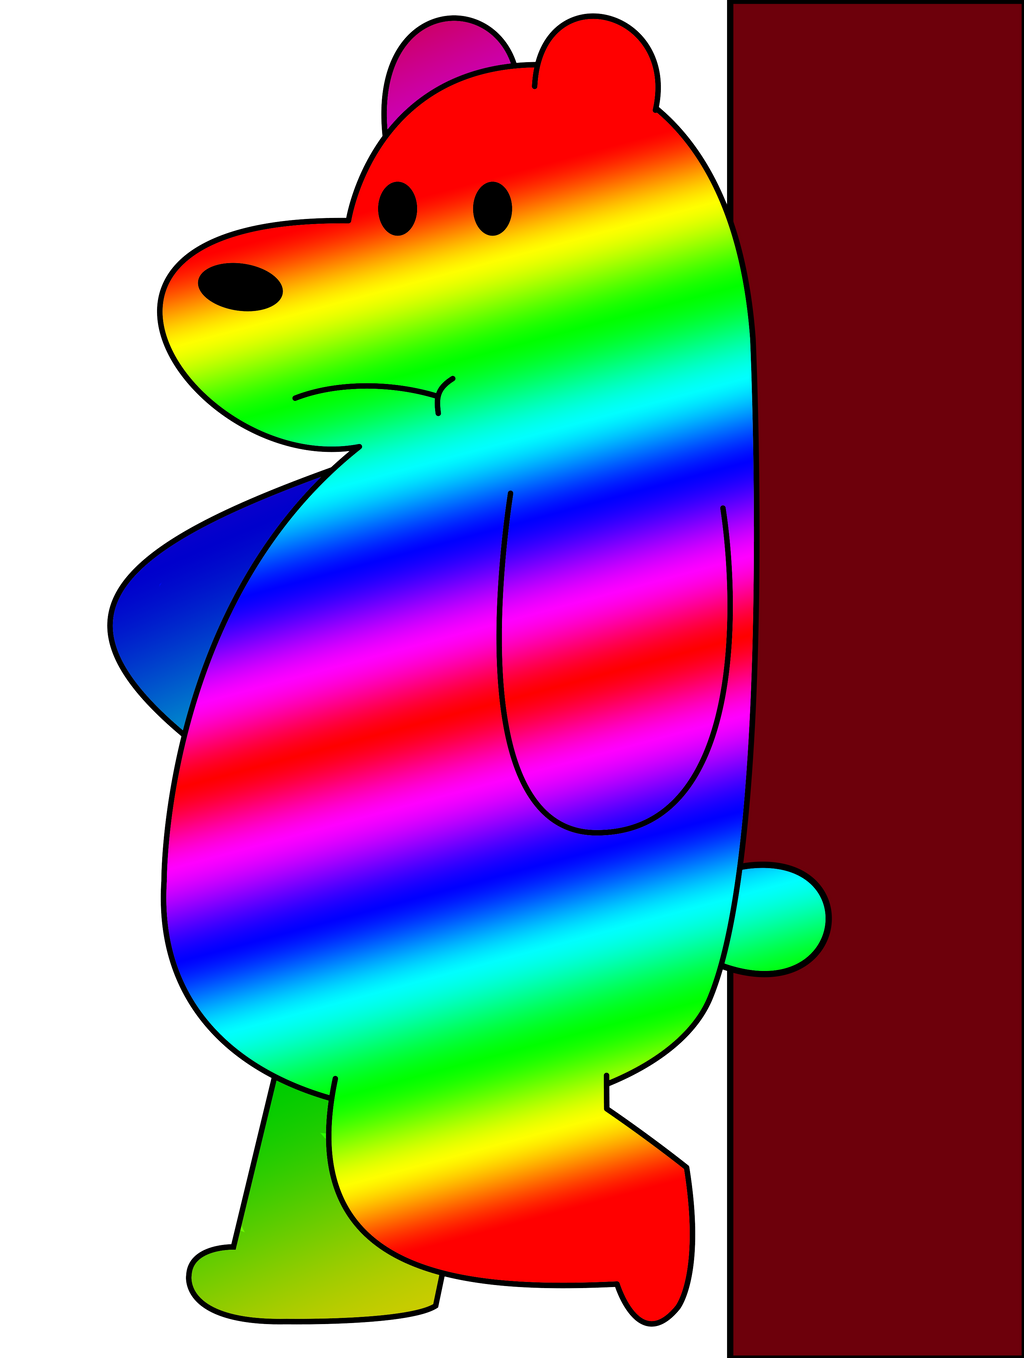 Rainbow bear by wildstar27 on DeviantArt